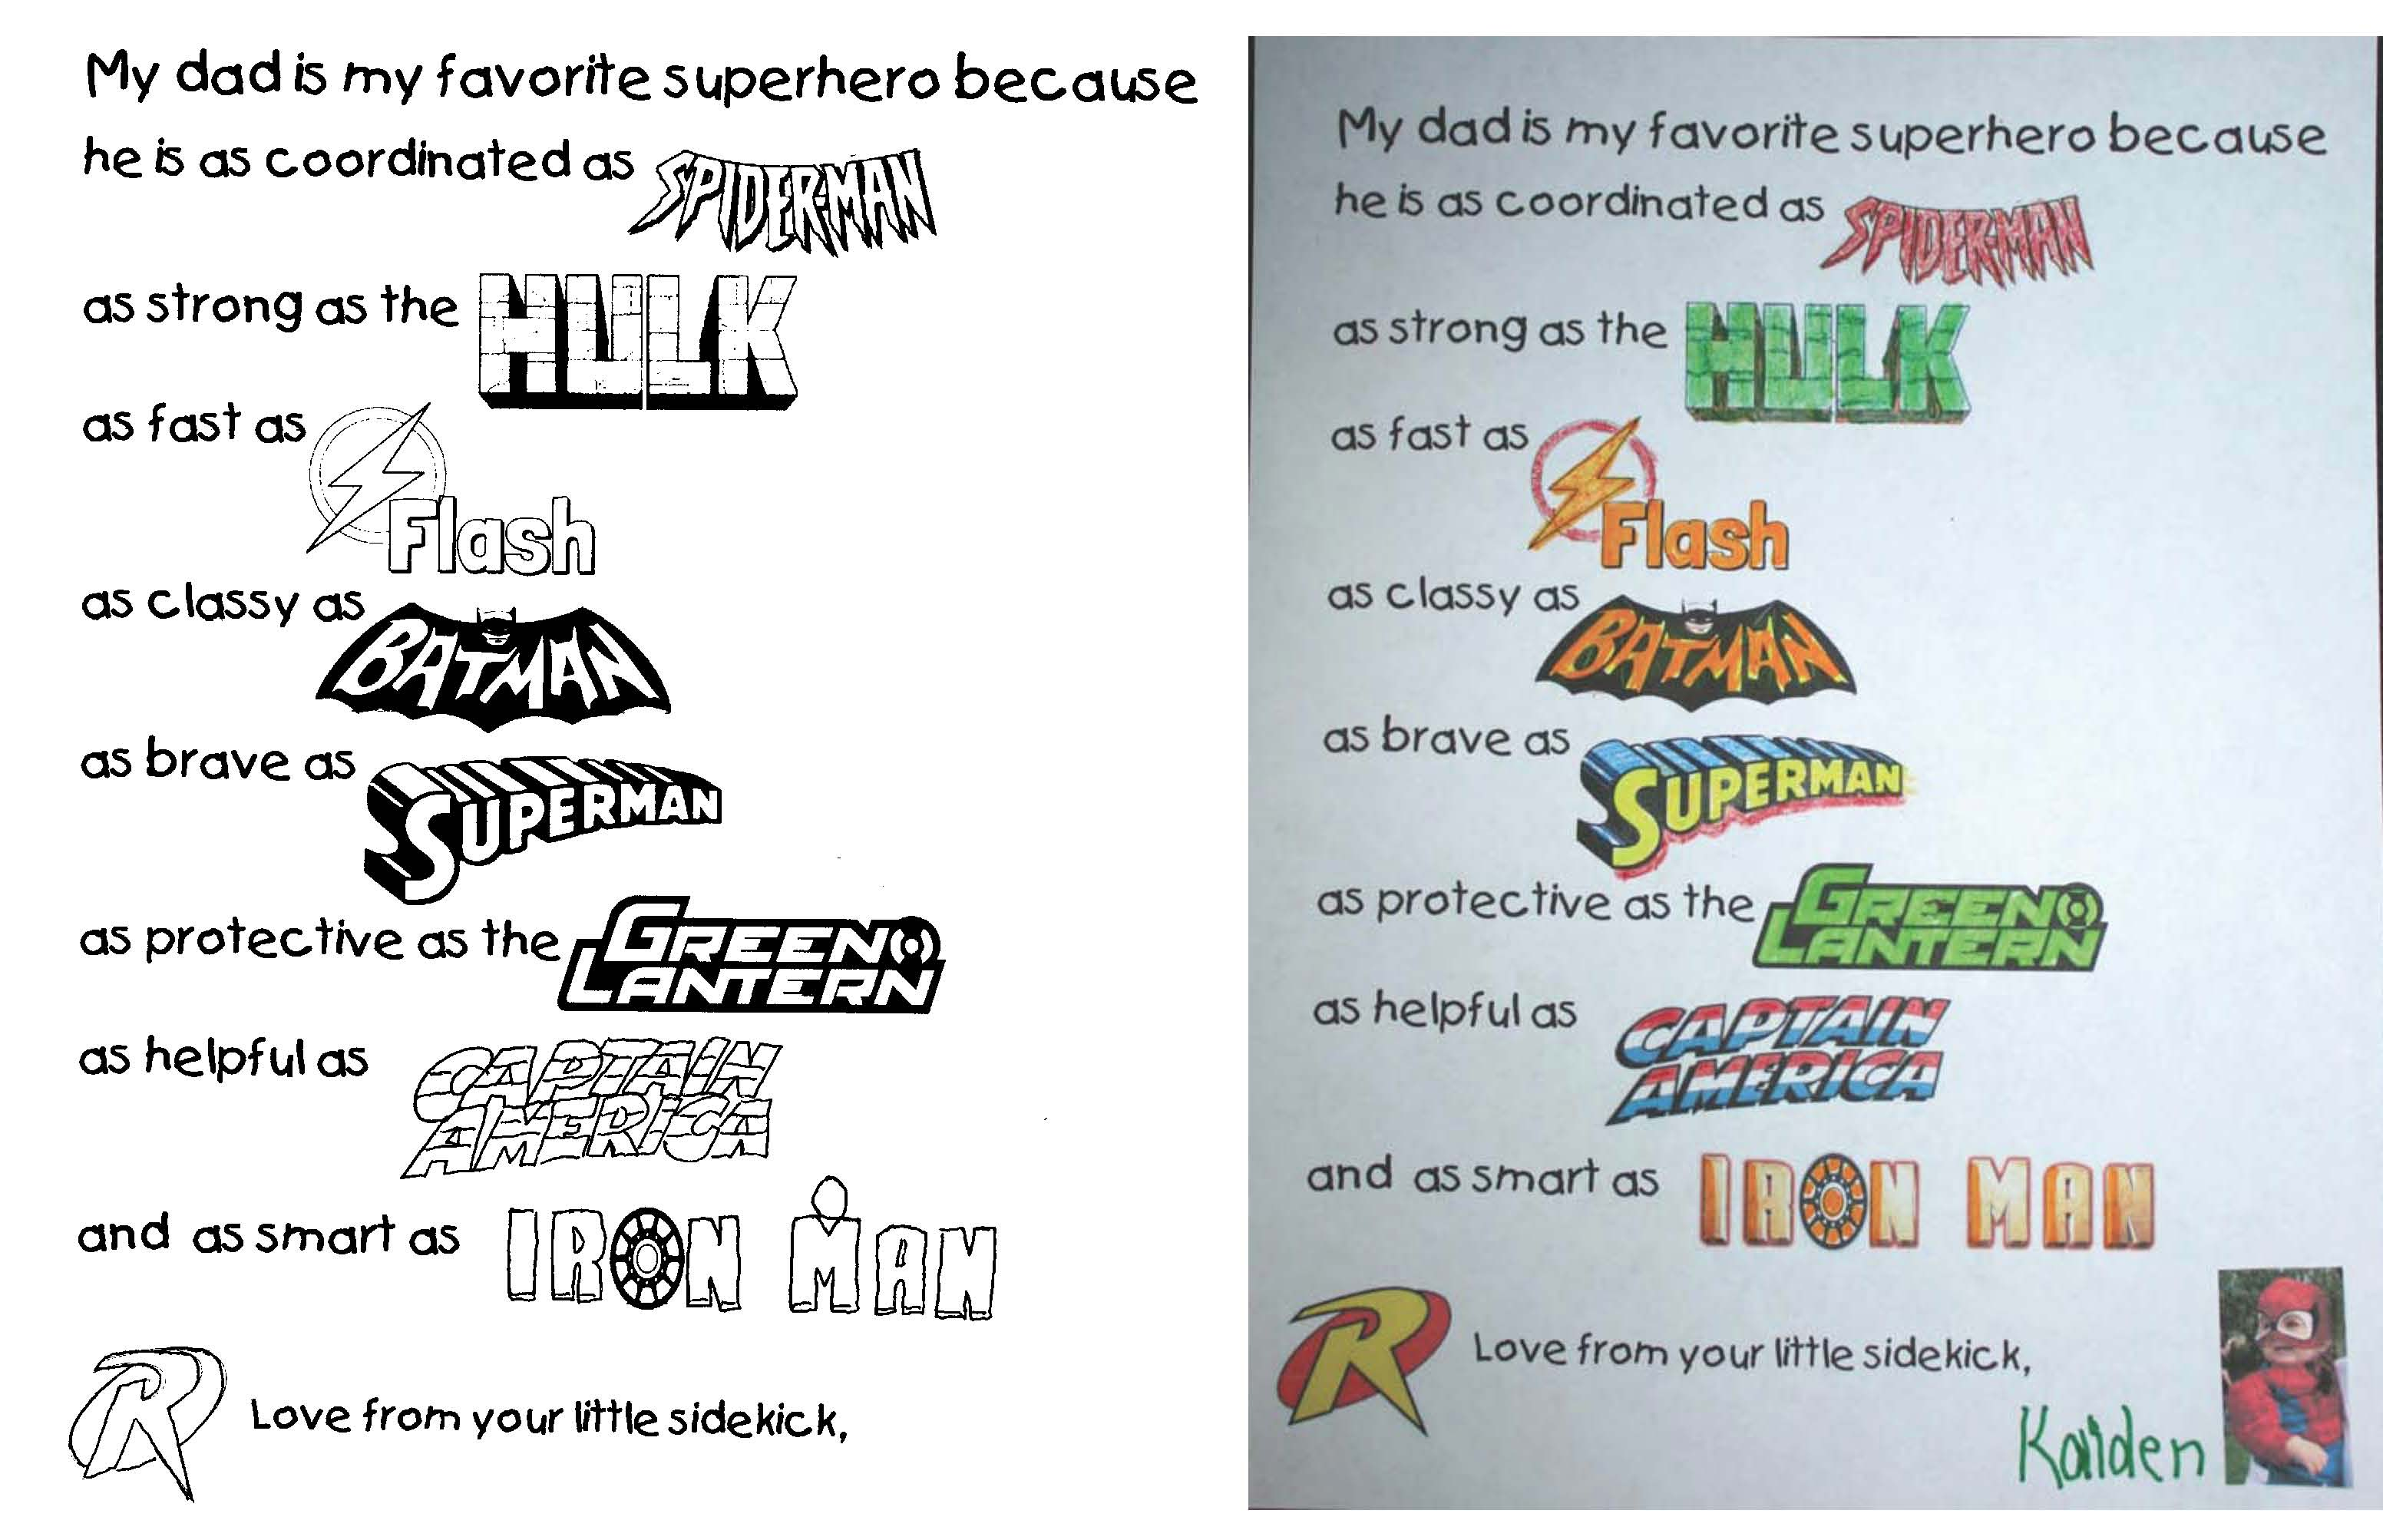 fathers day cards, fathers day ideas, fathers day crafts, fathers day gifts kids can make, fathers day writing prompts, end of the year activities, superhero activities, superhero cards, superhero crafts, superhero writing prompts, superhero dads, superhero fathers day activities, writing prompts for june